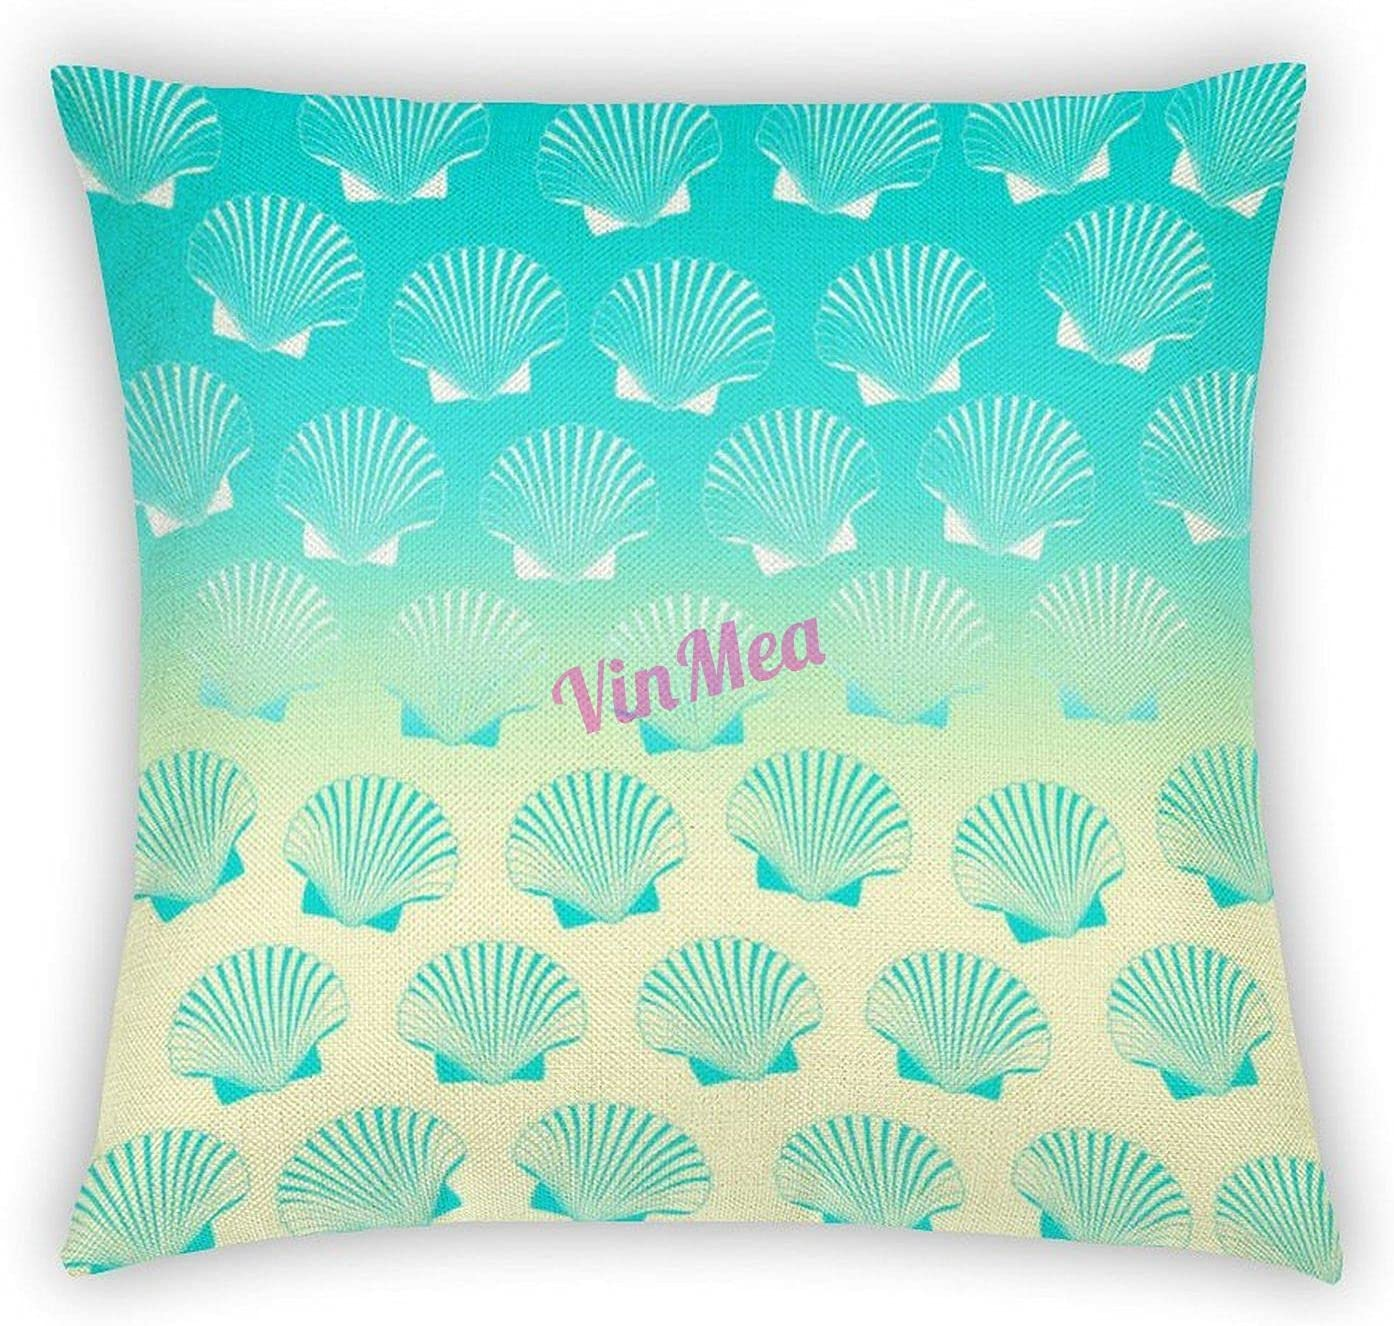 VinMea Decorative Cotton Linen Pillow Covers, Gradient Aqua Blue and Yellow Seashell Pattern Throw Pillow Case Cushion Cover Home Office Decor,Square 18 X 18 Inches